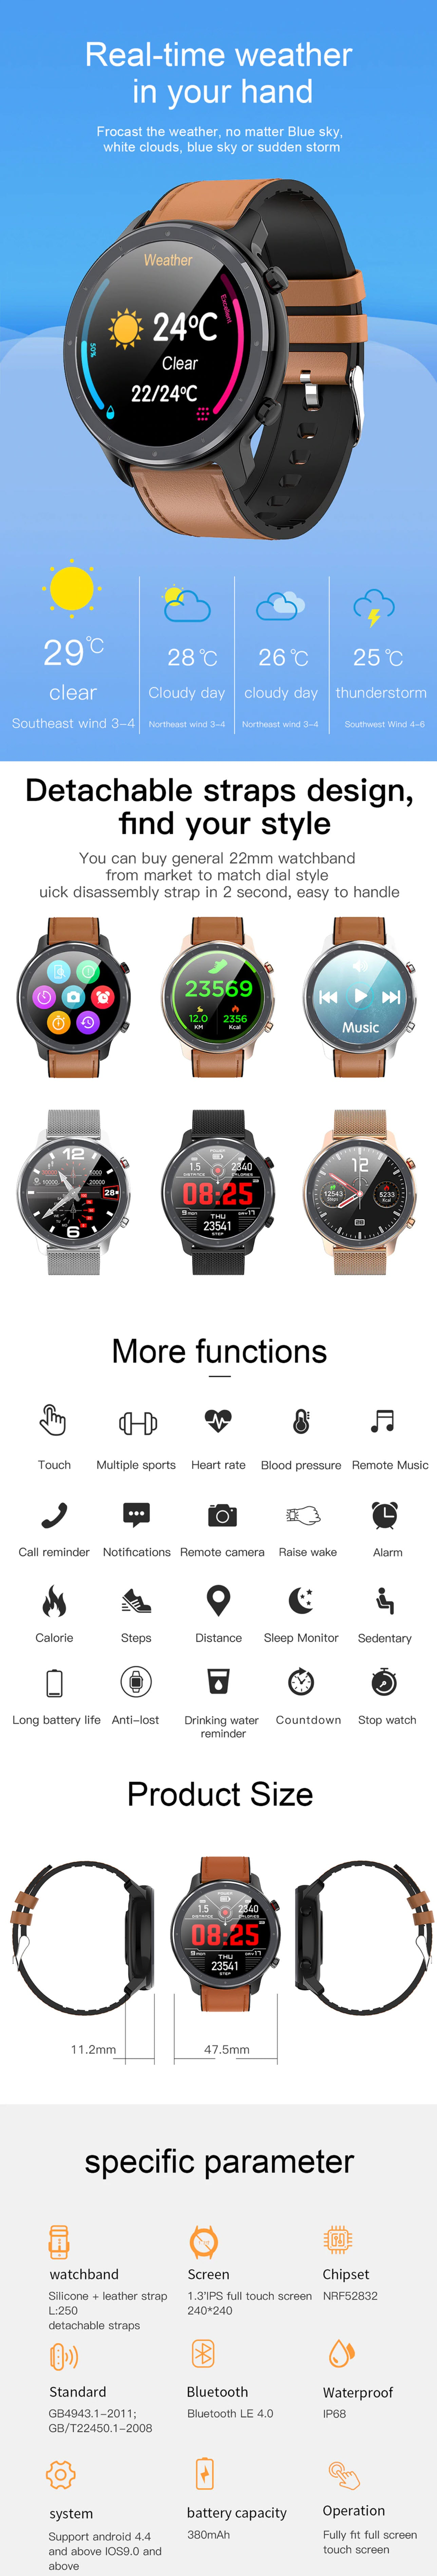 LEMFO L11 Smartwatch and Fitness Tracker Weather Updates, Interchangeable Strap Options, Functions, Product Size, and Specifications